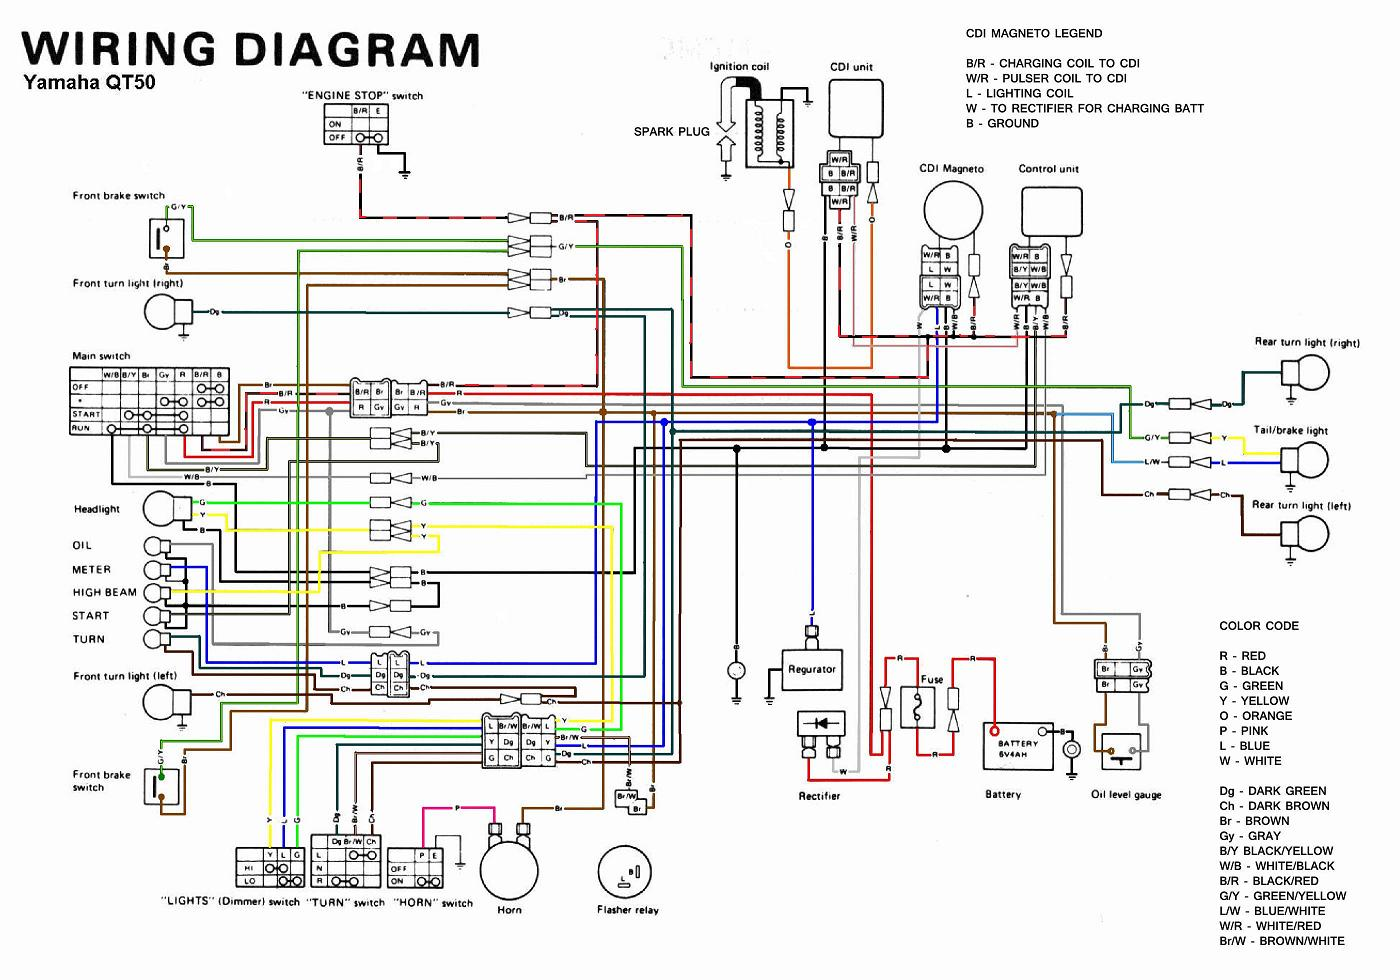 2008 r6 wiring harness diagram #11 Ninja 250 Wiring Diagram 2008 r6 wiring harness diagram